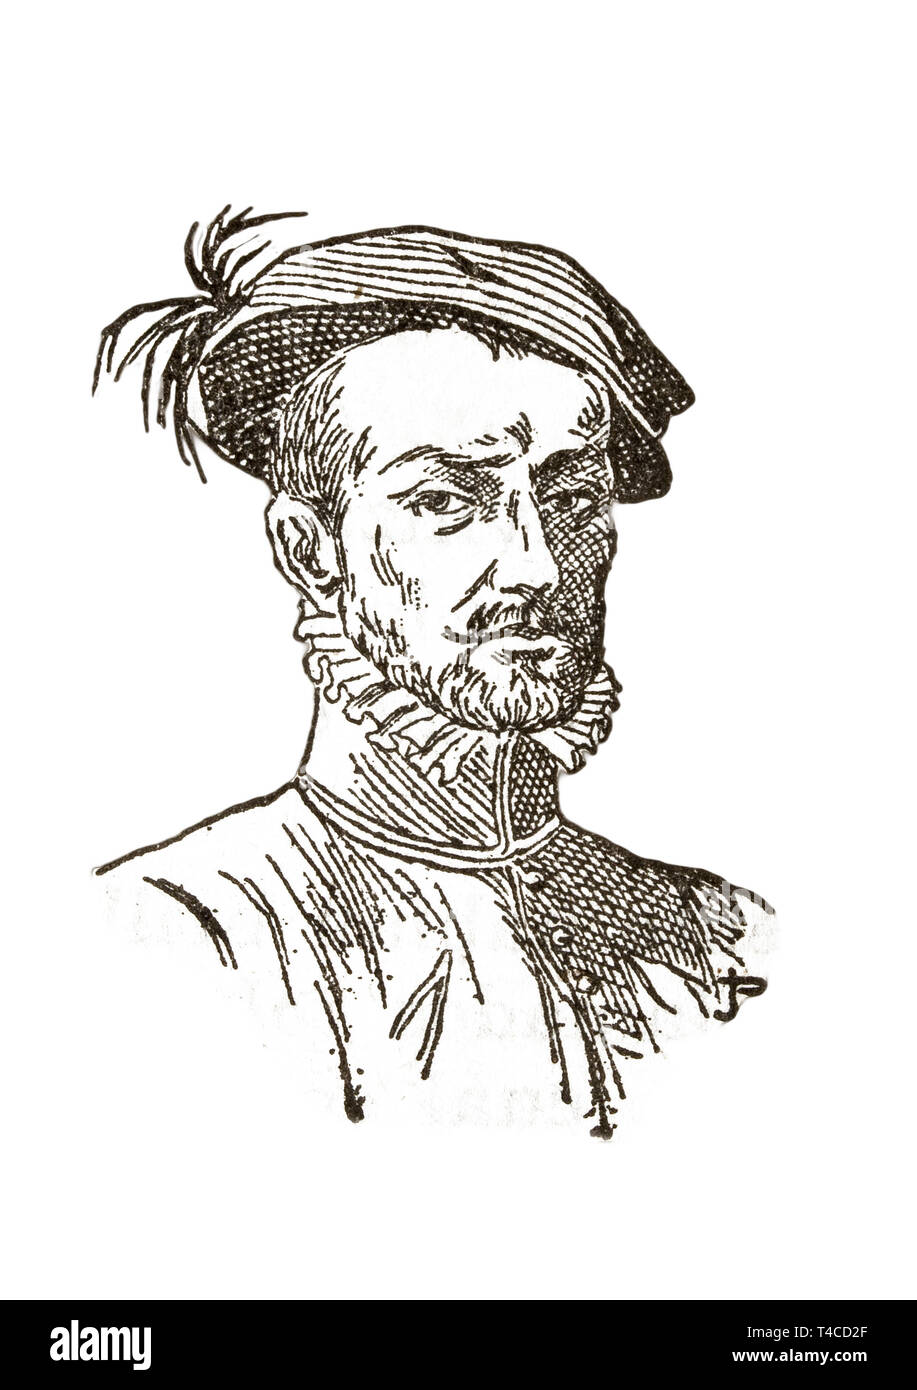 Badajoz, Spain - Jan 7th, 2019: Hernán Cortés Portrait. Draw from book Enciclopedia Autodidactica published by Dalmau Carles in 1954 Stock Photo